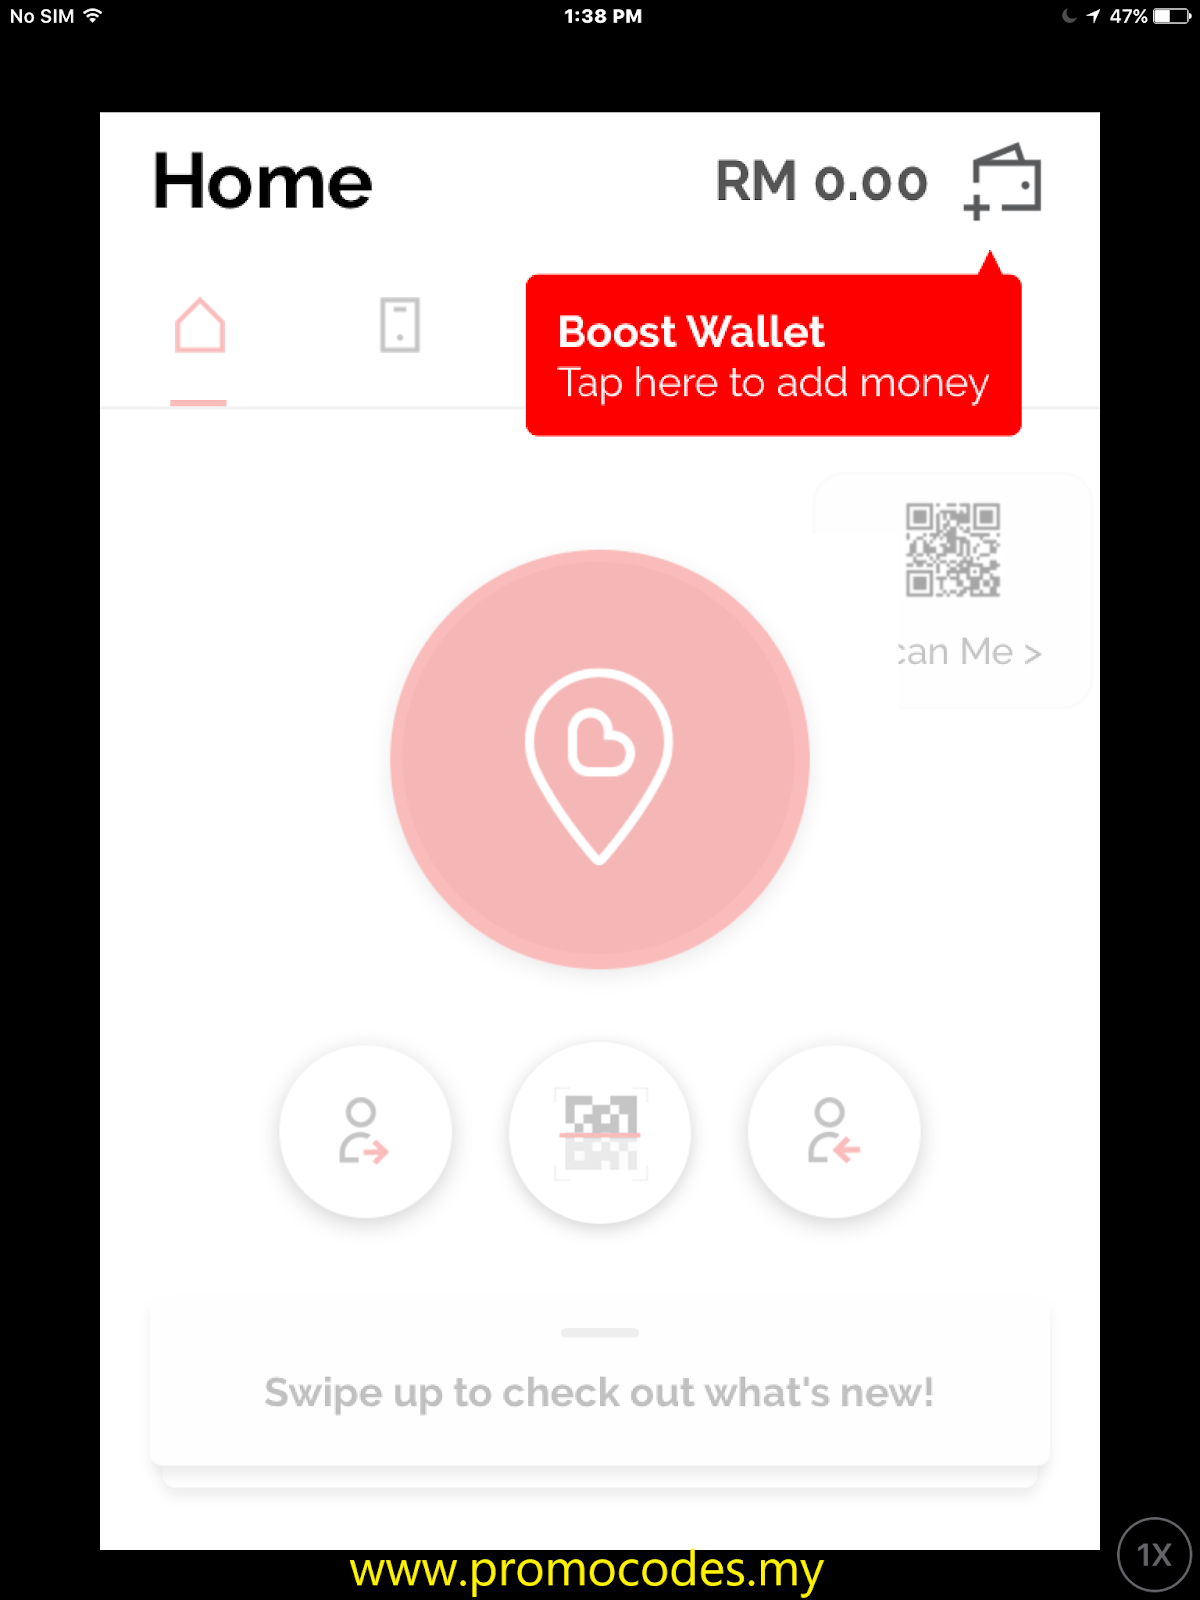 Register For Boost App : Step by Step - Promo Codes MY